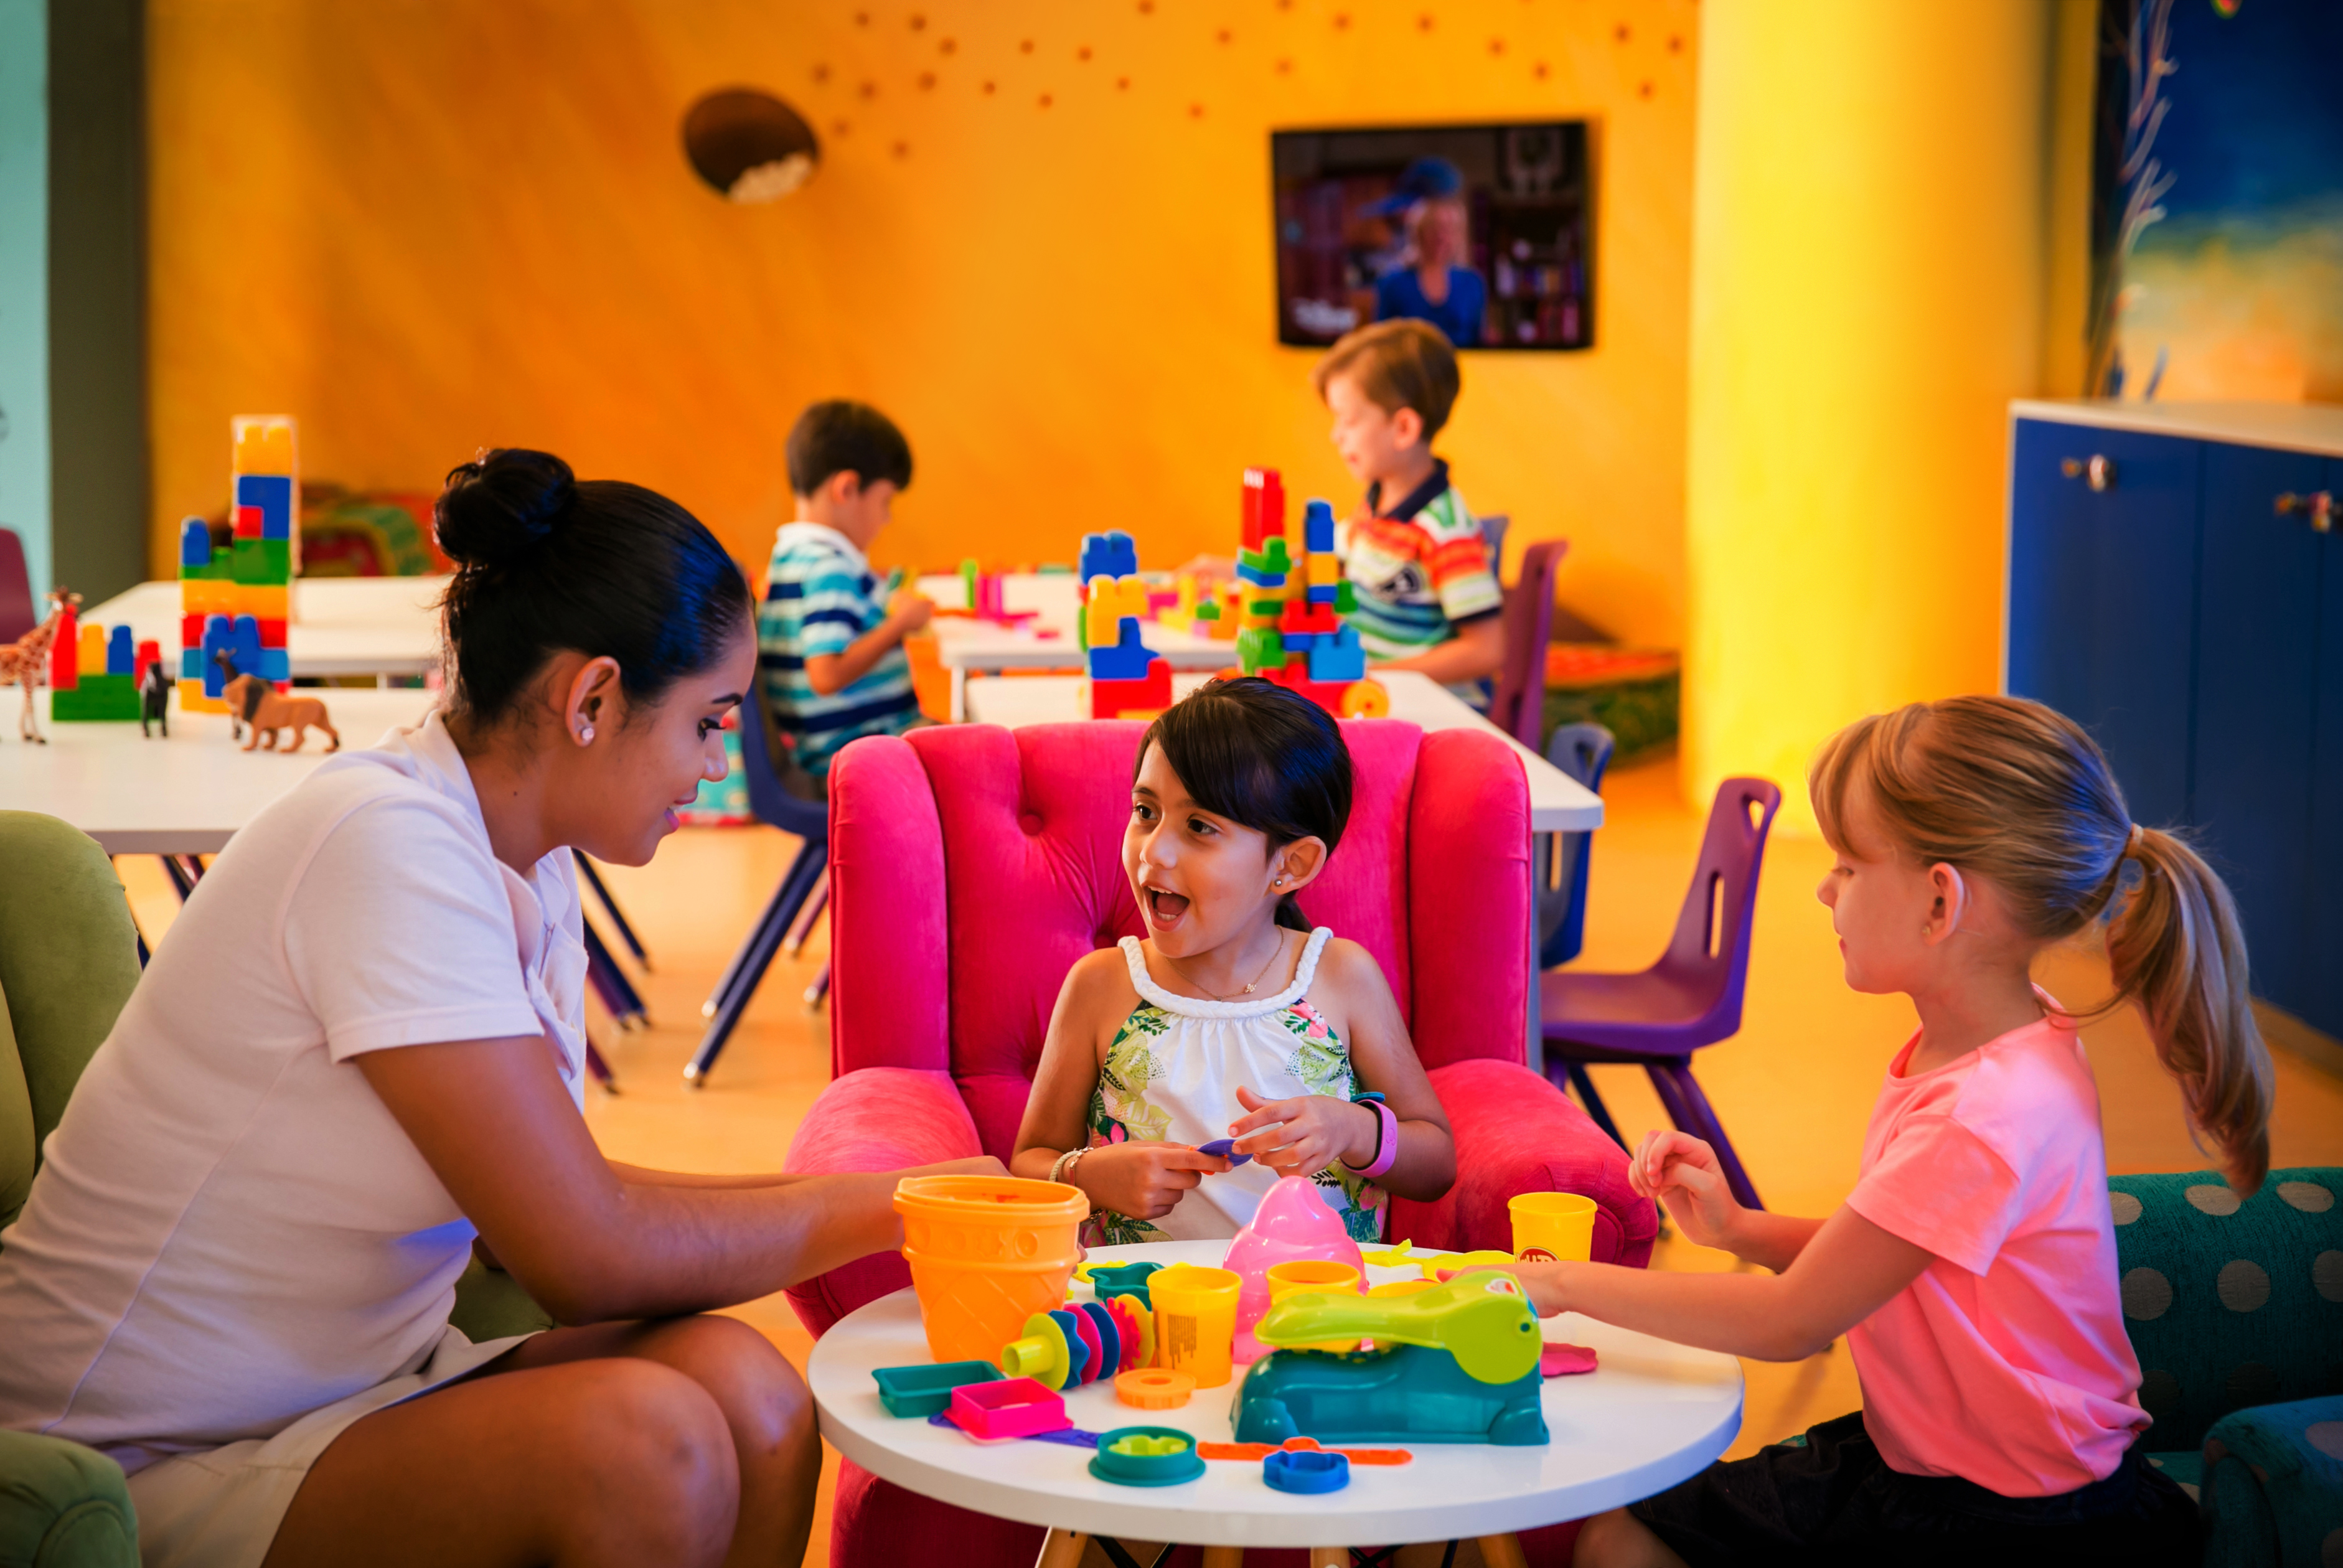 Hotels and resorts that offer childcare services, like the Velas Vallarta, pictured here, are a big hit with families.